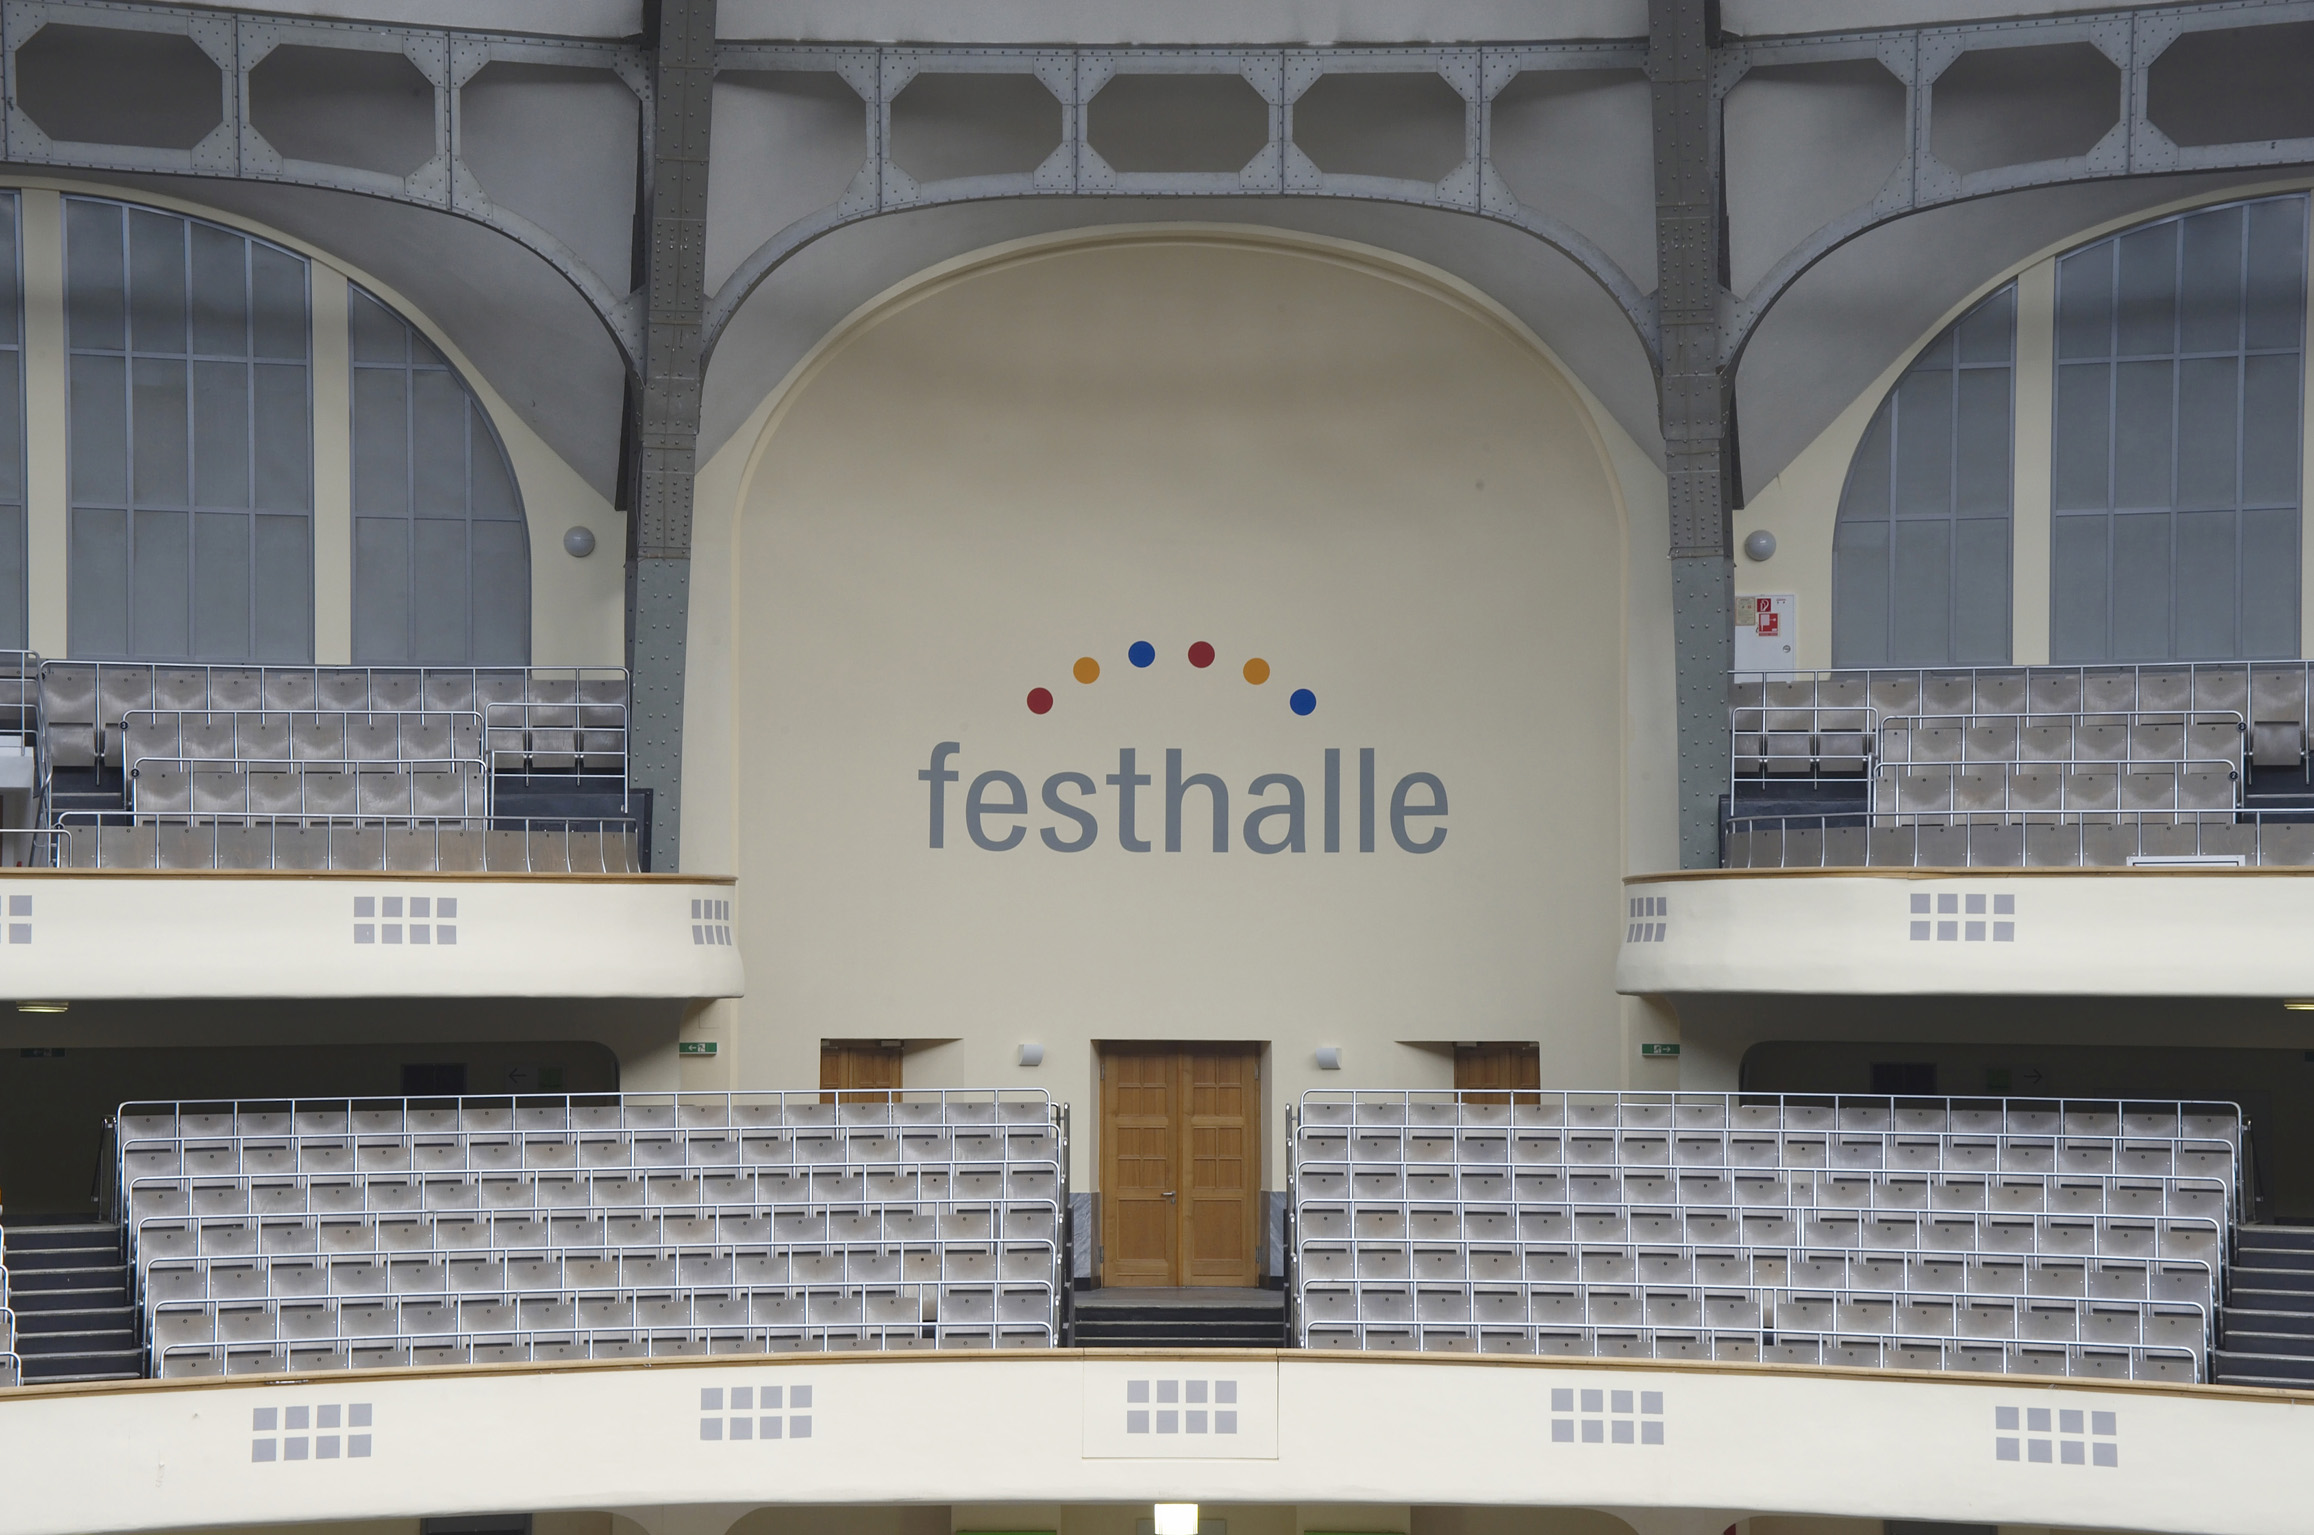 Festhalle - 1. and 2. level